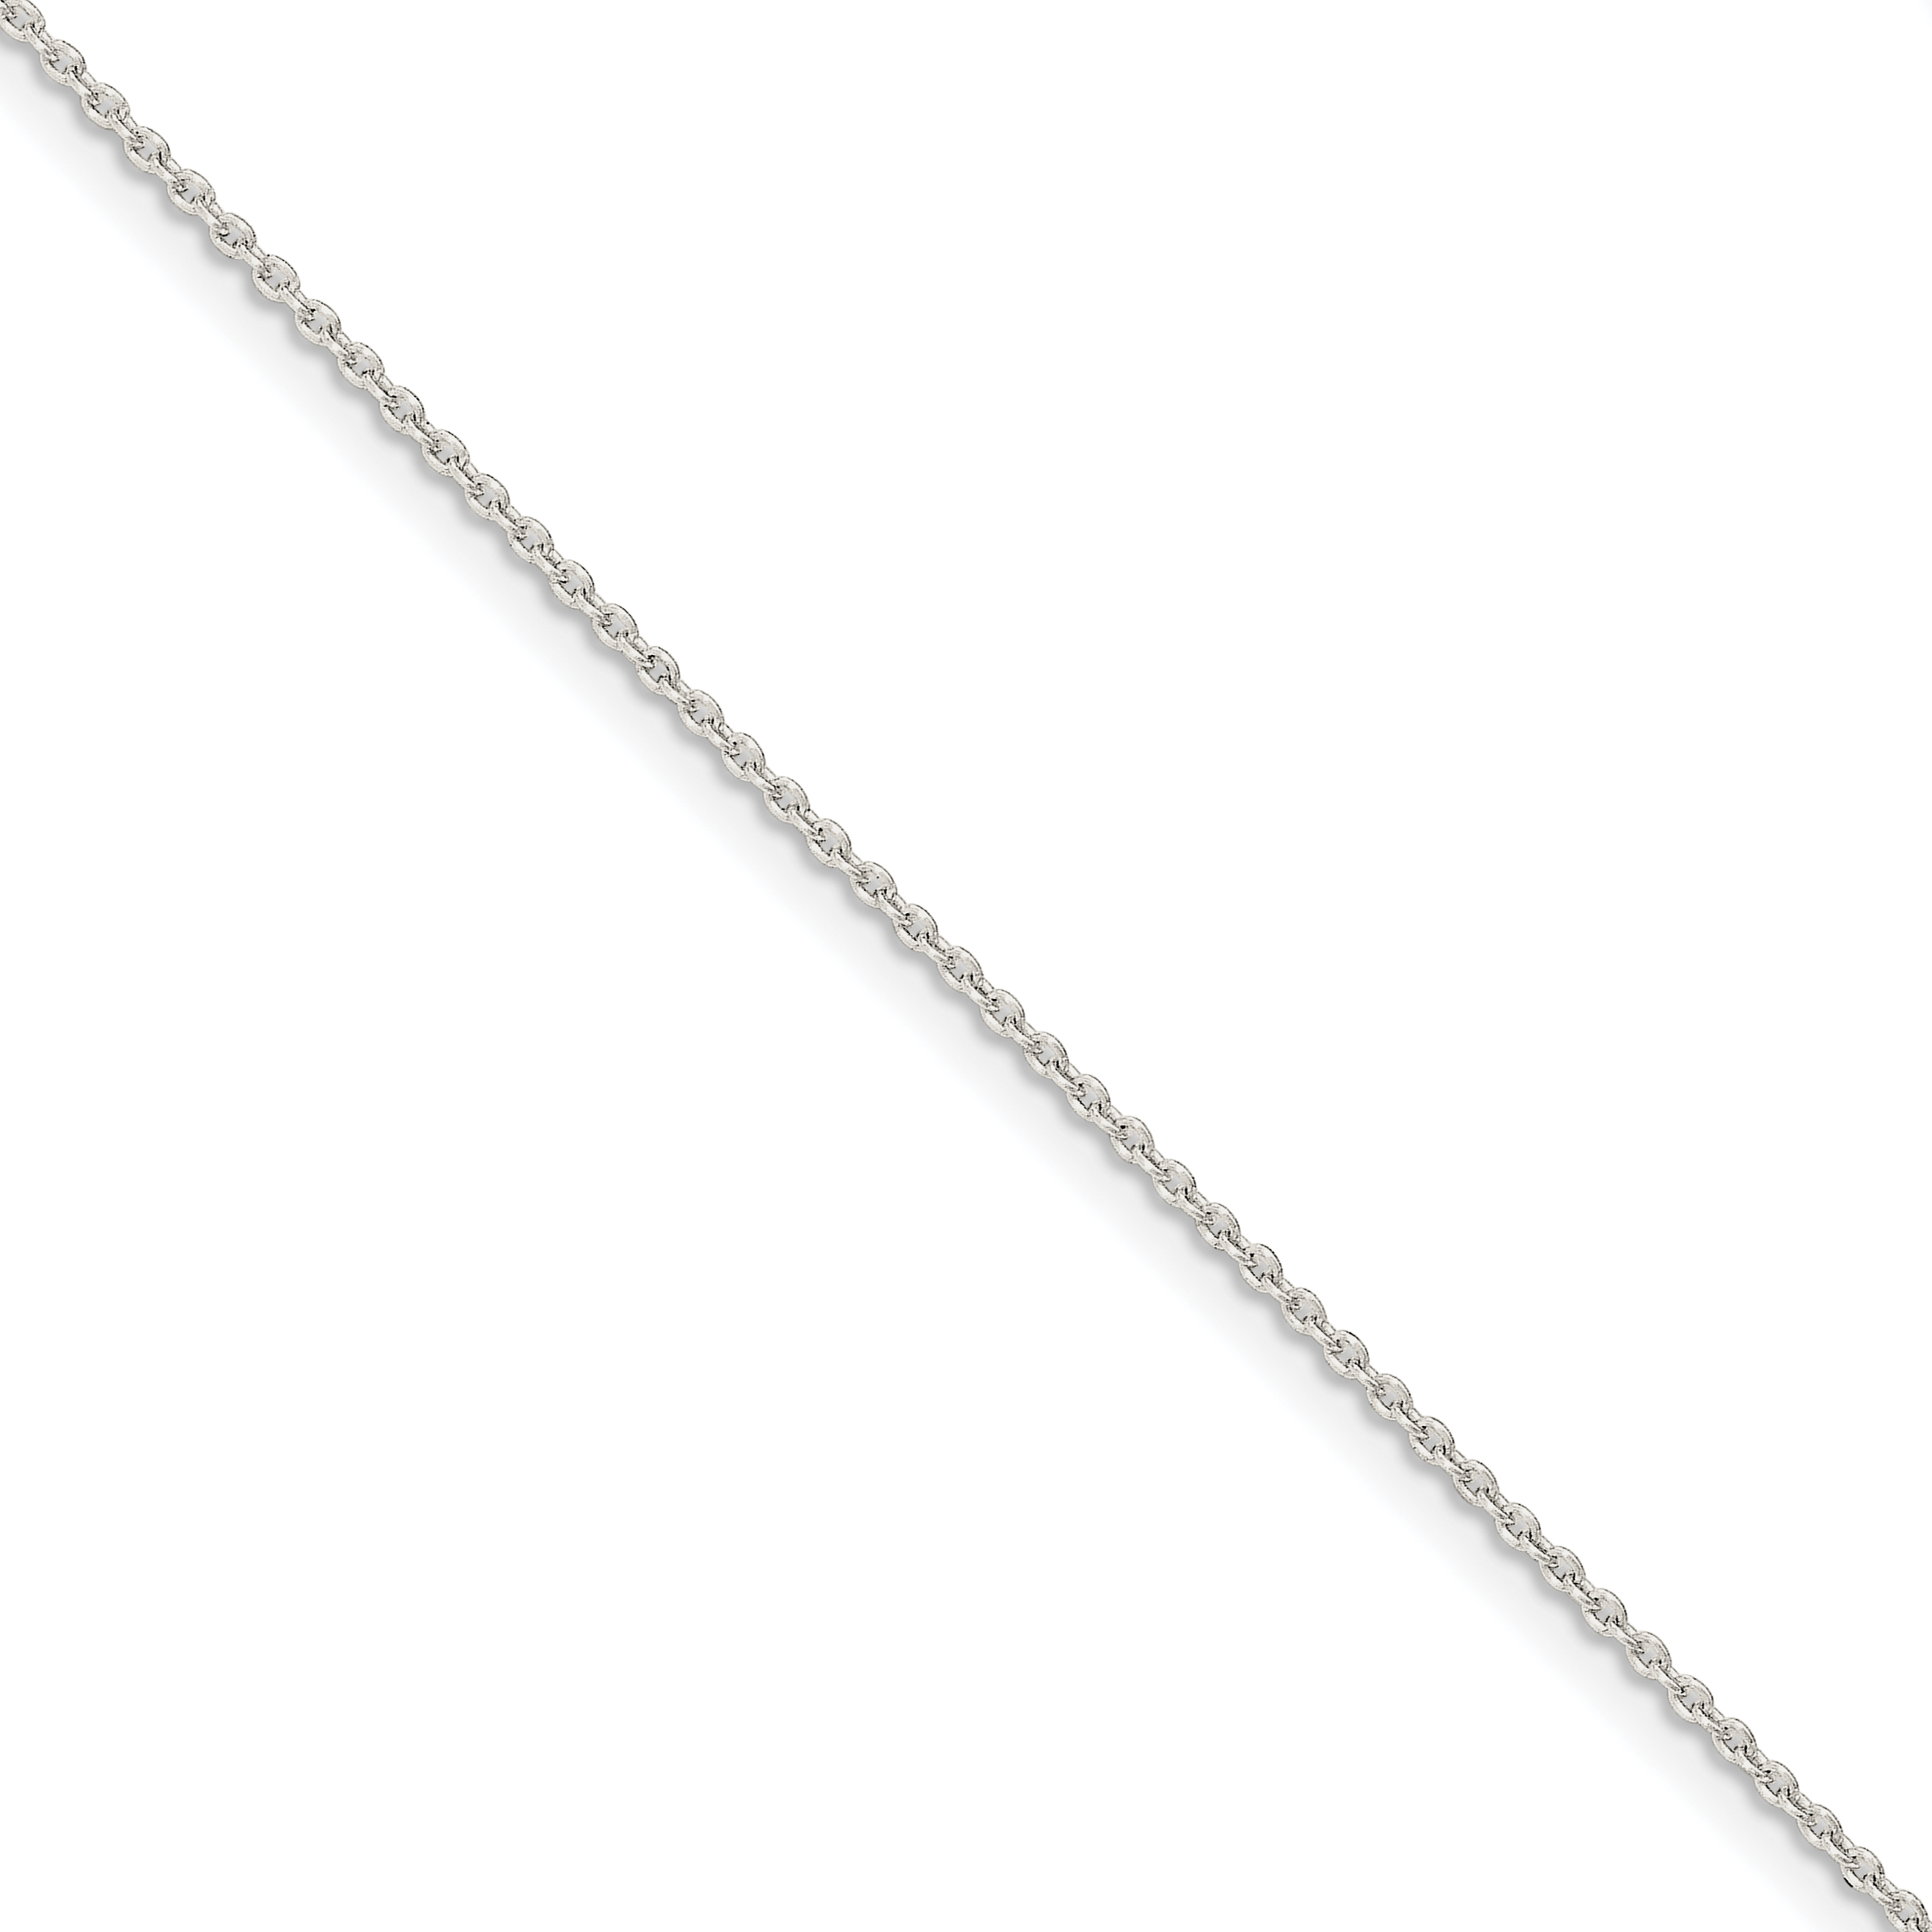 Sterling Silver 1.5mm Cable Chain | Weight: 1.18 grams, Length: 9mm, Width: 1.5mm